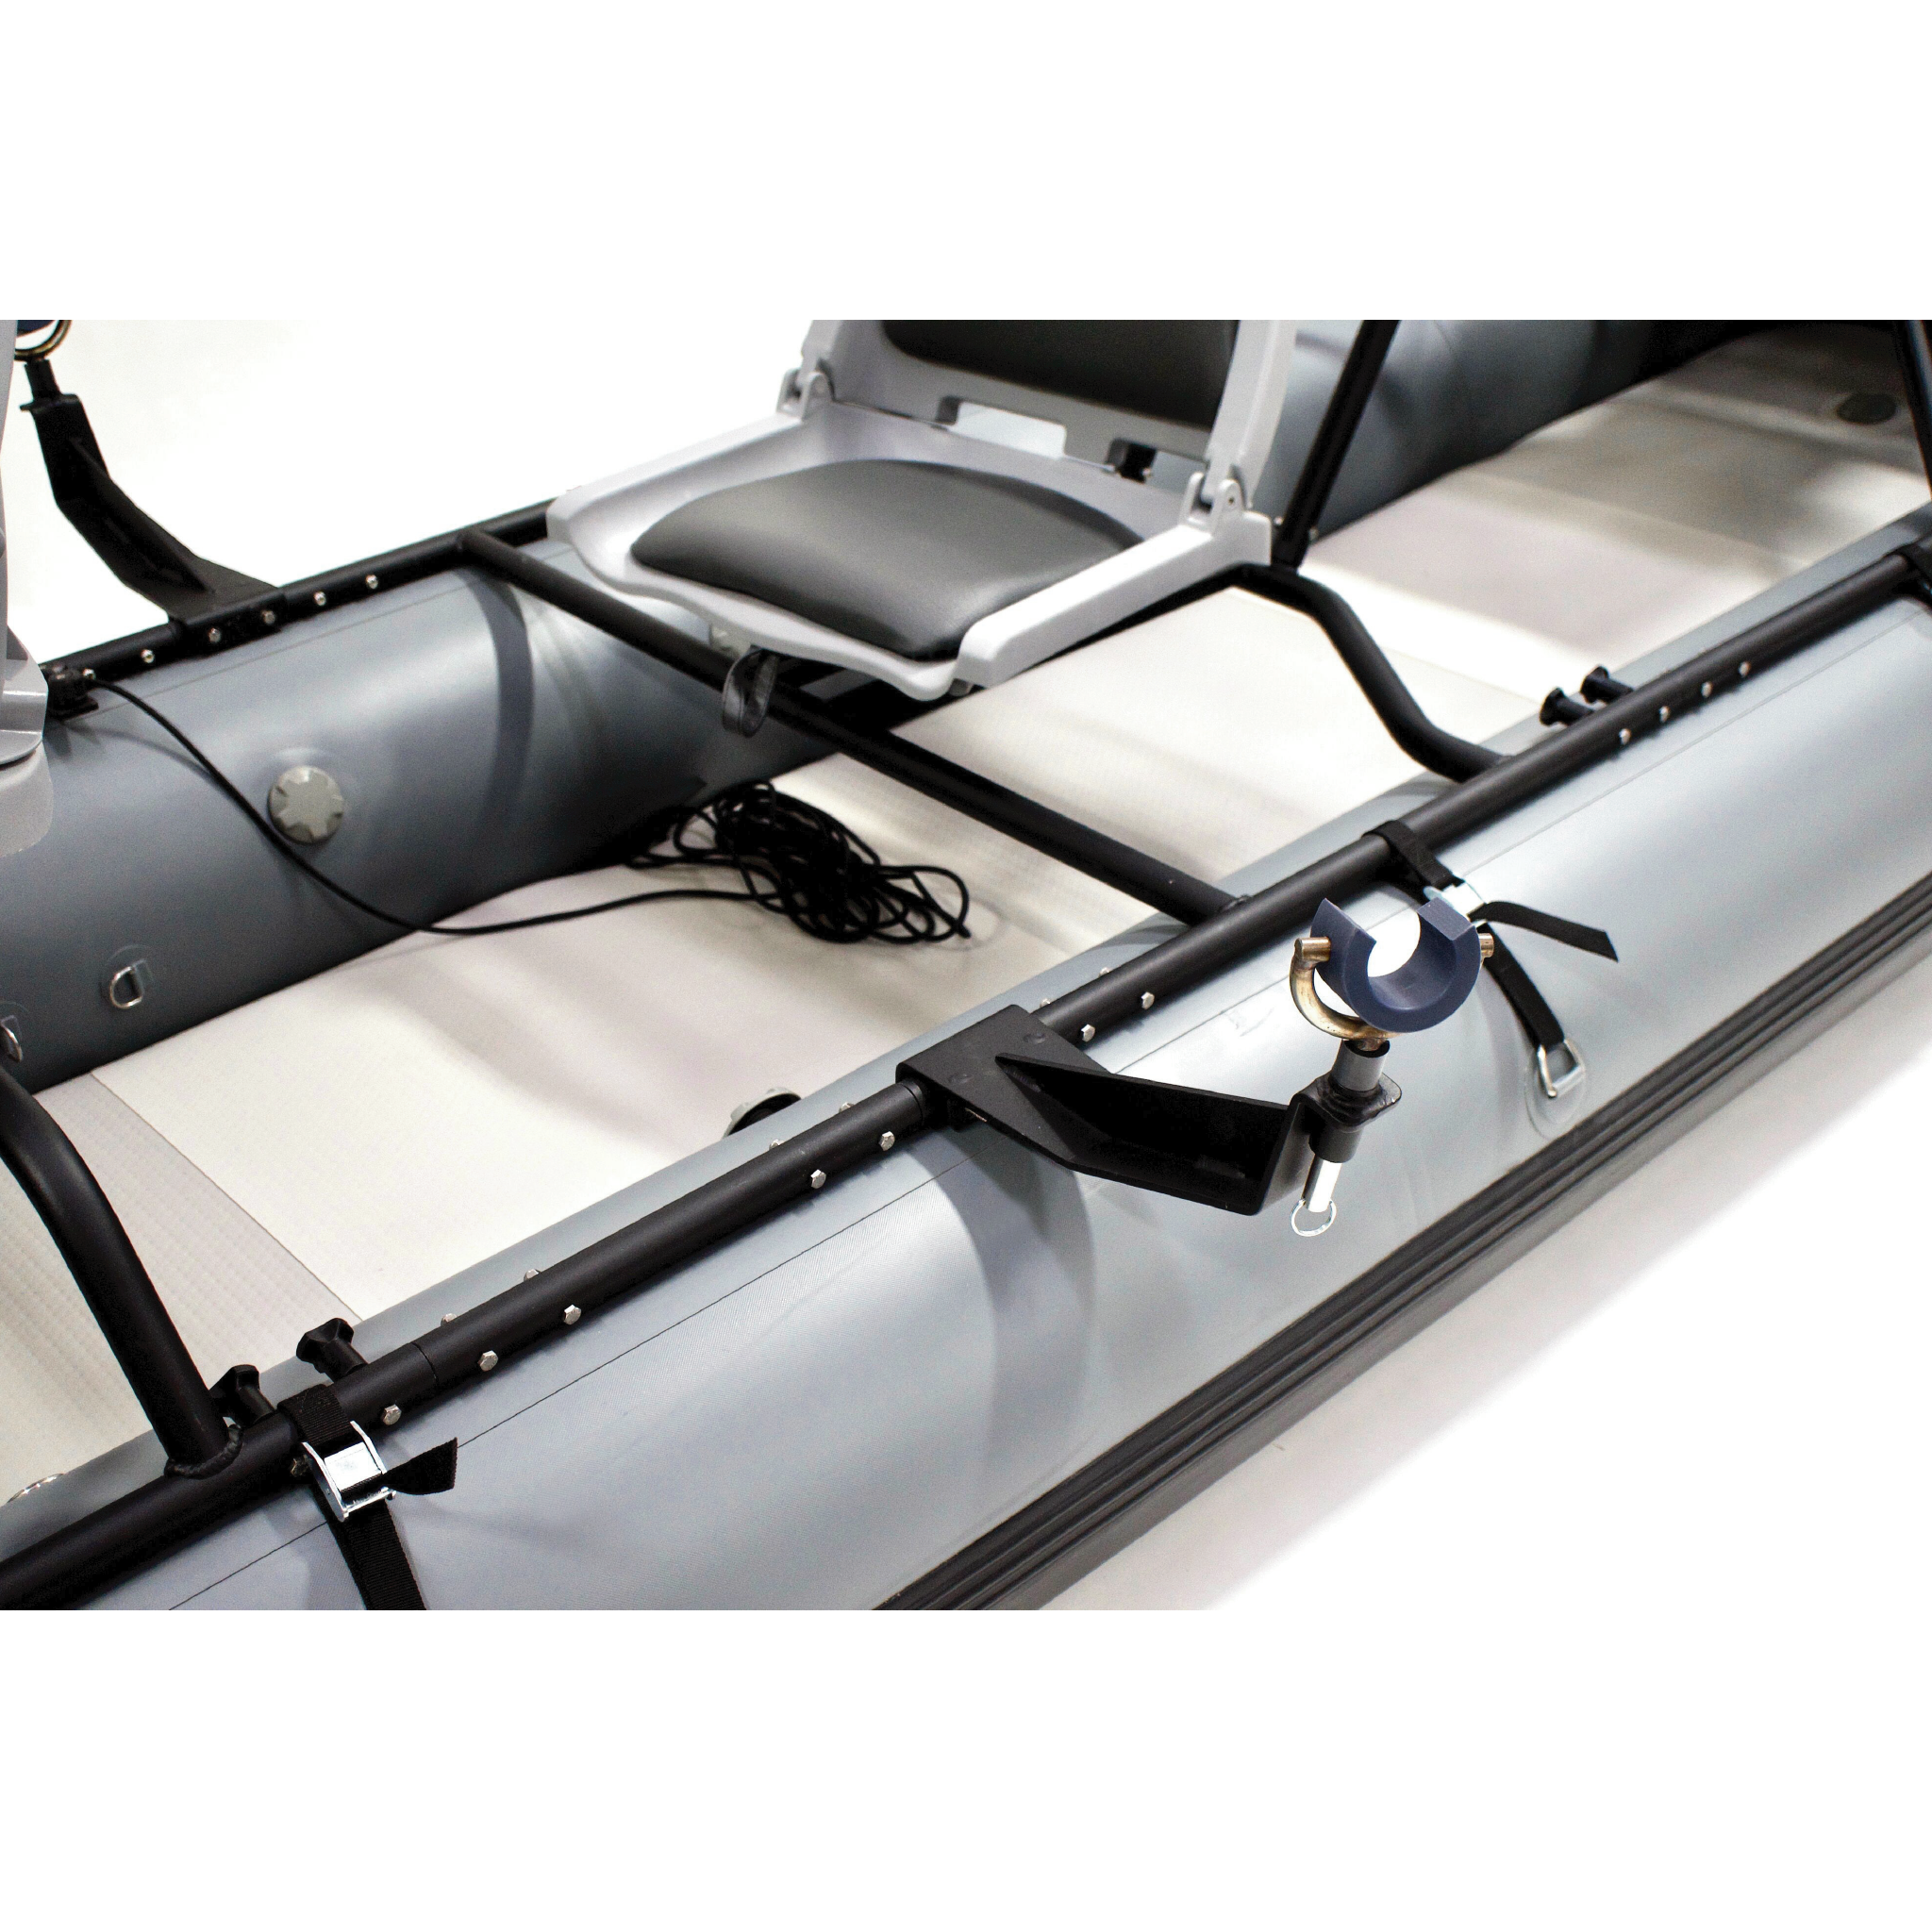 The Flycraft 3 Person 14' Inflatable Boat - 3 Man Raft